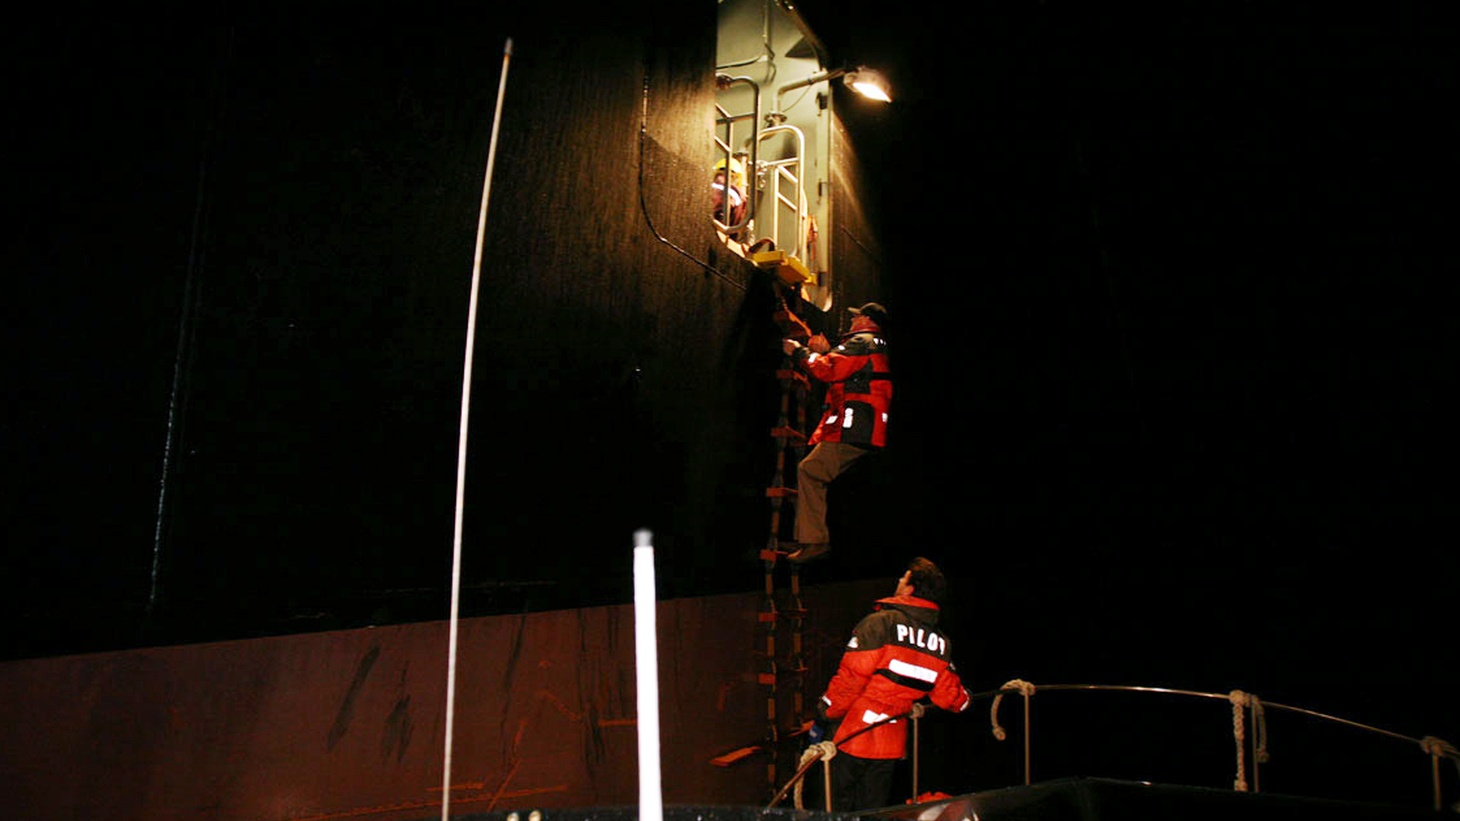 As ships get bigger, a pilot's job gets more difficult. Take a nighttime ride with Captains Mark Coynes and Bob Lukowski, as they park one of the largest ships ever to come into the Port of Long Beach. 